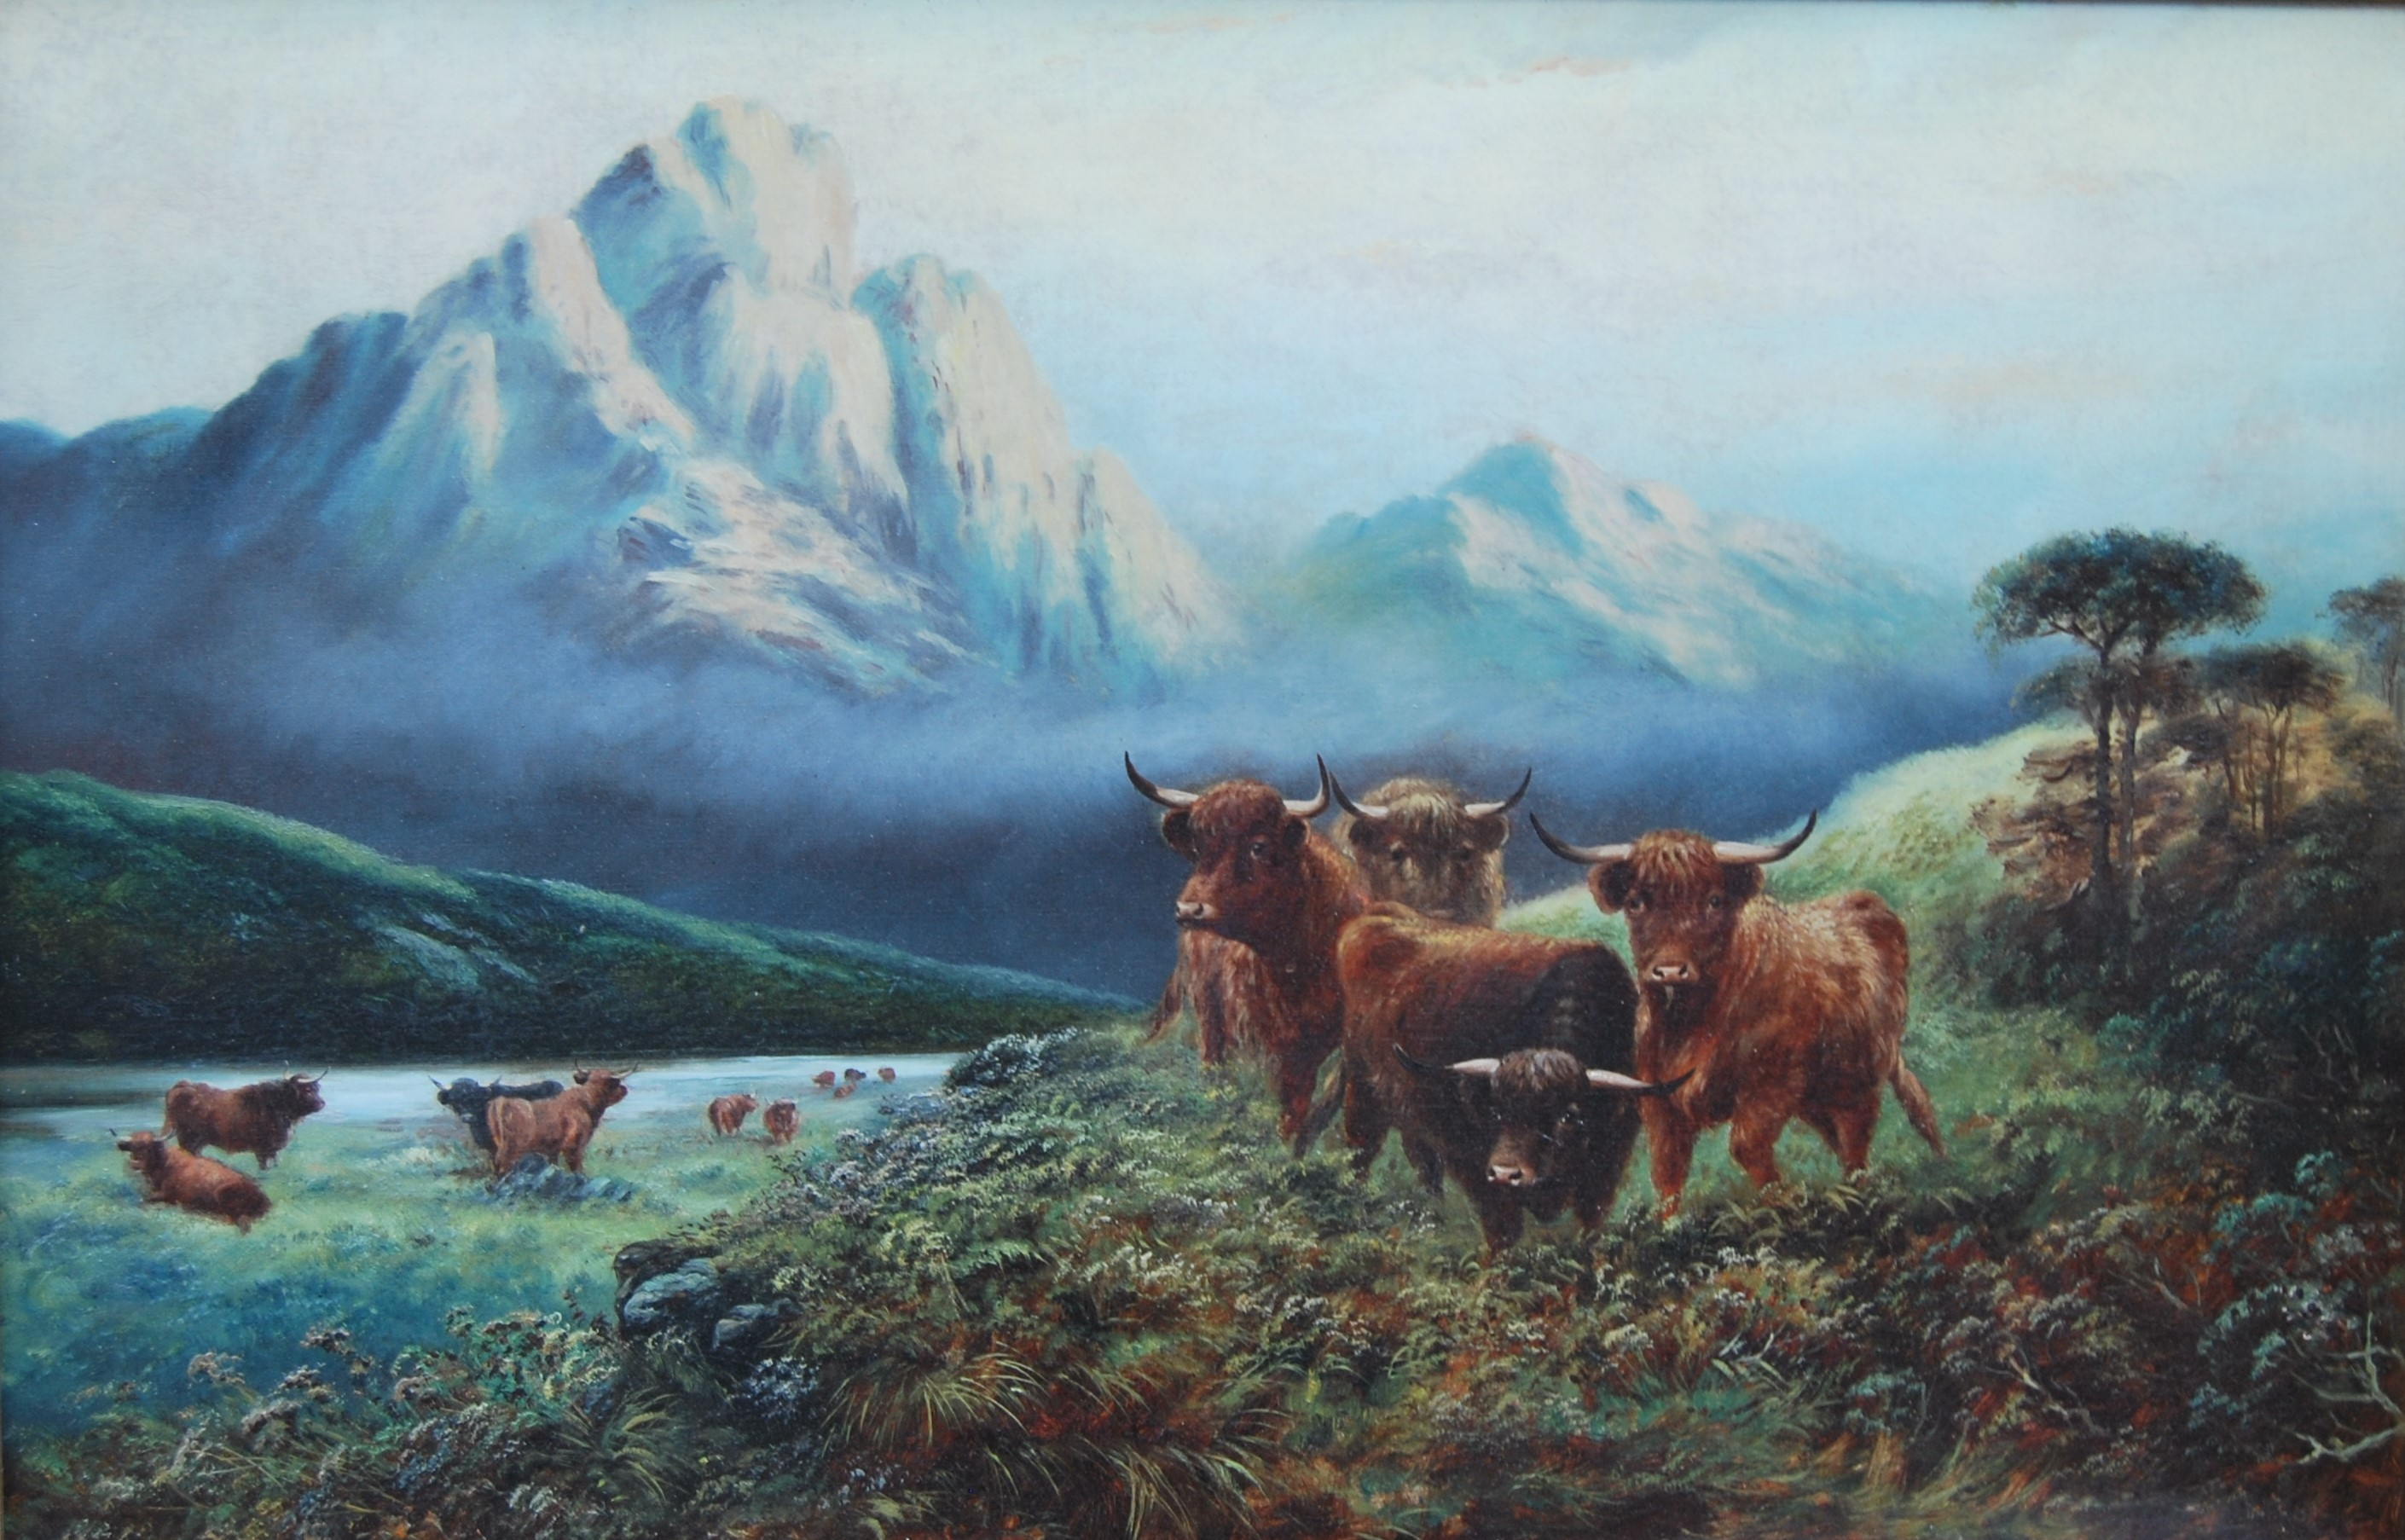 Highland scene with cattle